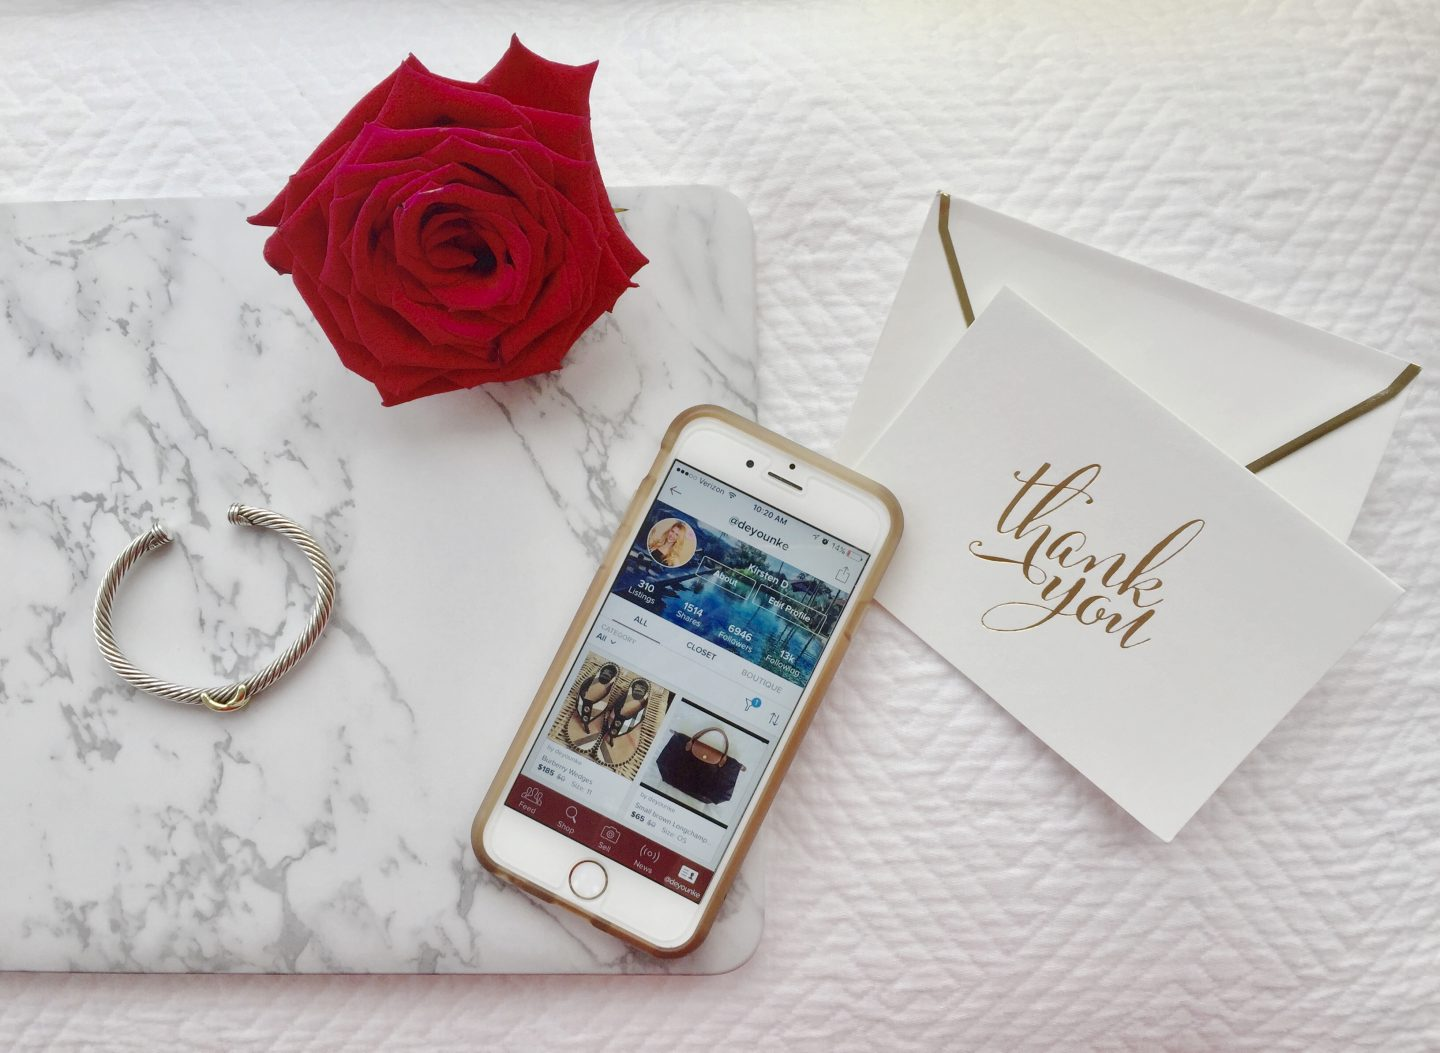 Poshmark – Why and How